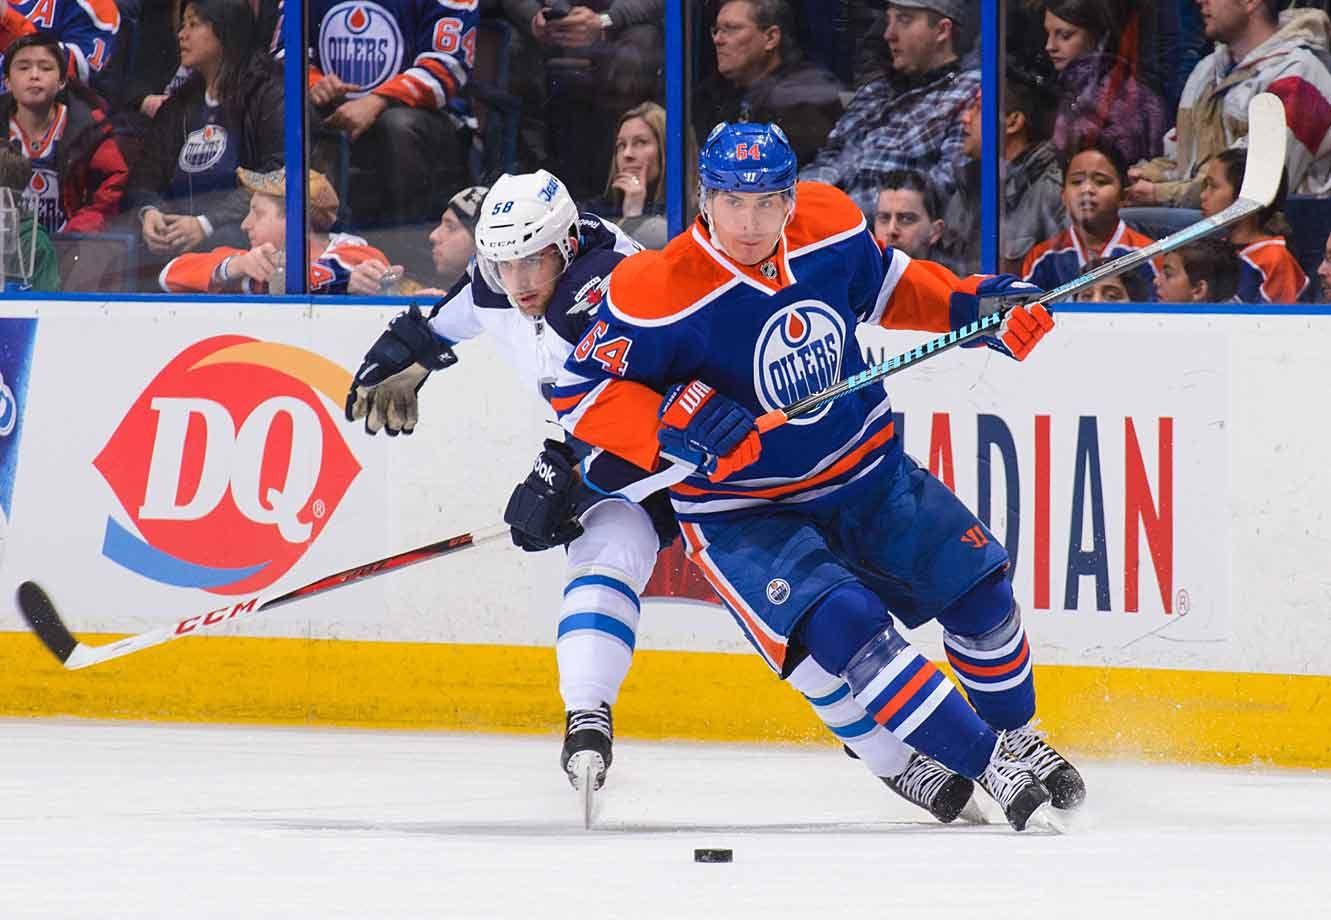 He led all rookies with 17 goals in the lockout-shortened season of 2012–13. But Yakupov, the top pick in the '12 draft, followed that up with a dreadful sophomore campaign in which he scored 24 points in 63 games. (An ankle injury sidelined the 21-year-old winger for 14 games last season, and Edmonton coach Dallas Eakins sidelined him for a couple more.) Yakupov has since made nice with Eakins. He reported to camp this fall carrying an extra 11 pounds of muscle.